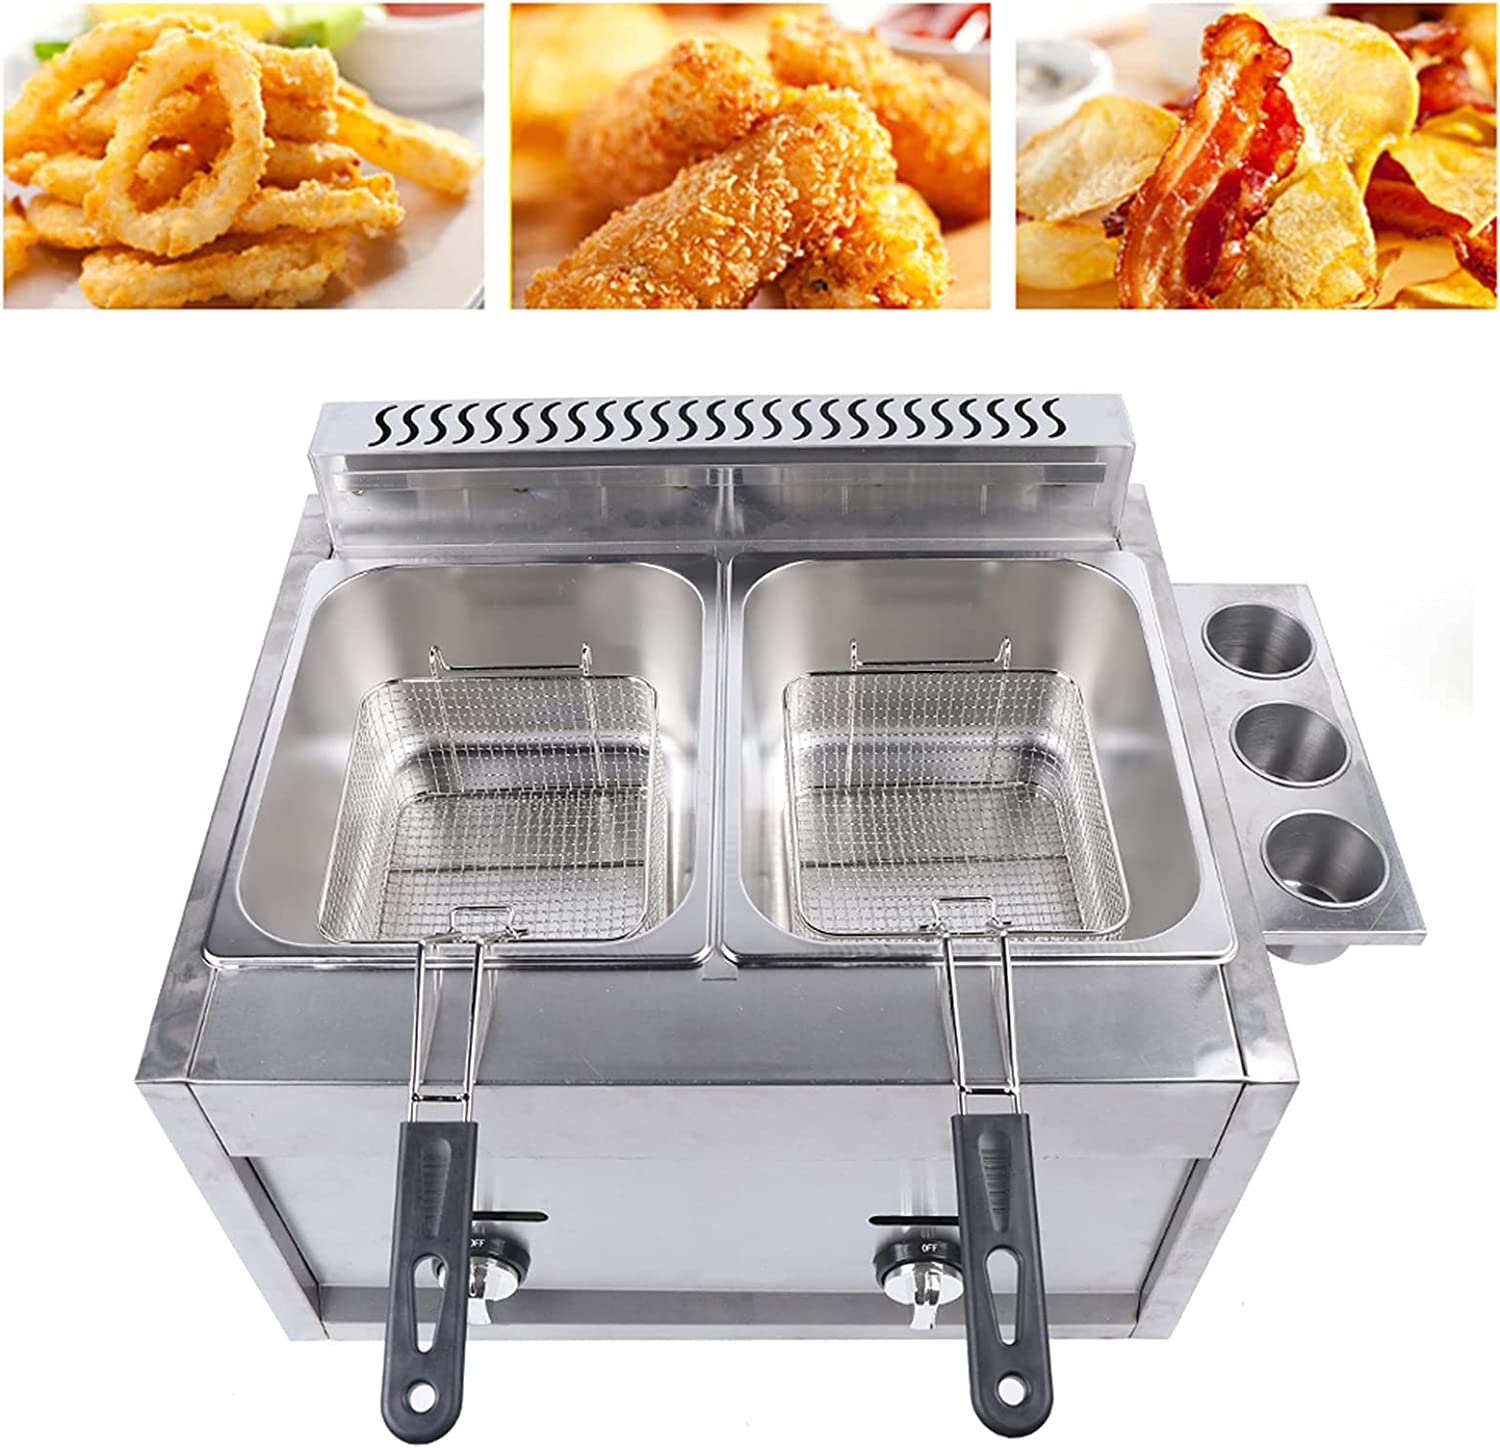 Gdrasuya10 Commercial Countertop Deep Fryer,Propane /Gas Multifunctional Stainless Steel Non Smoke Double Deep Fryer for Commercial/Home French Fries,18000Btu / hr (2x6L)